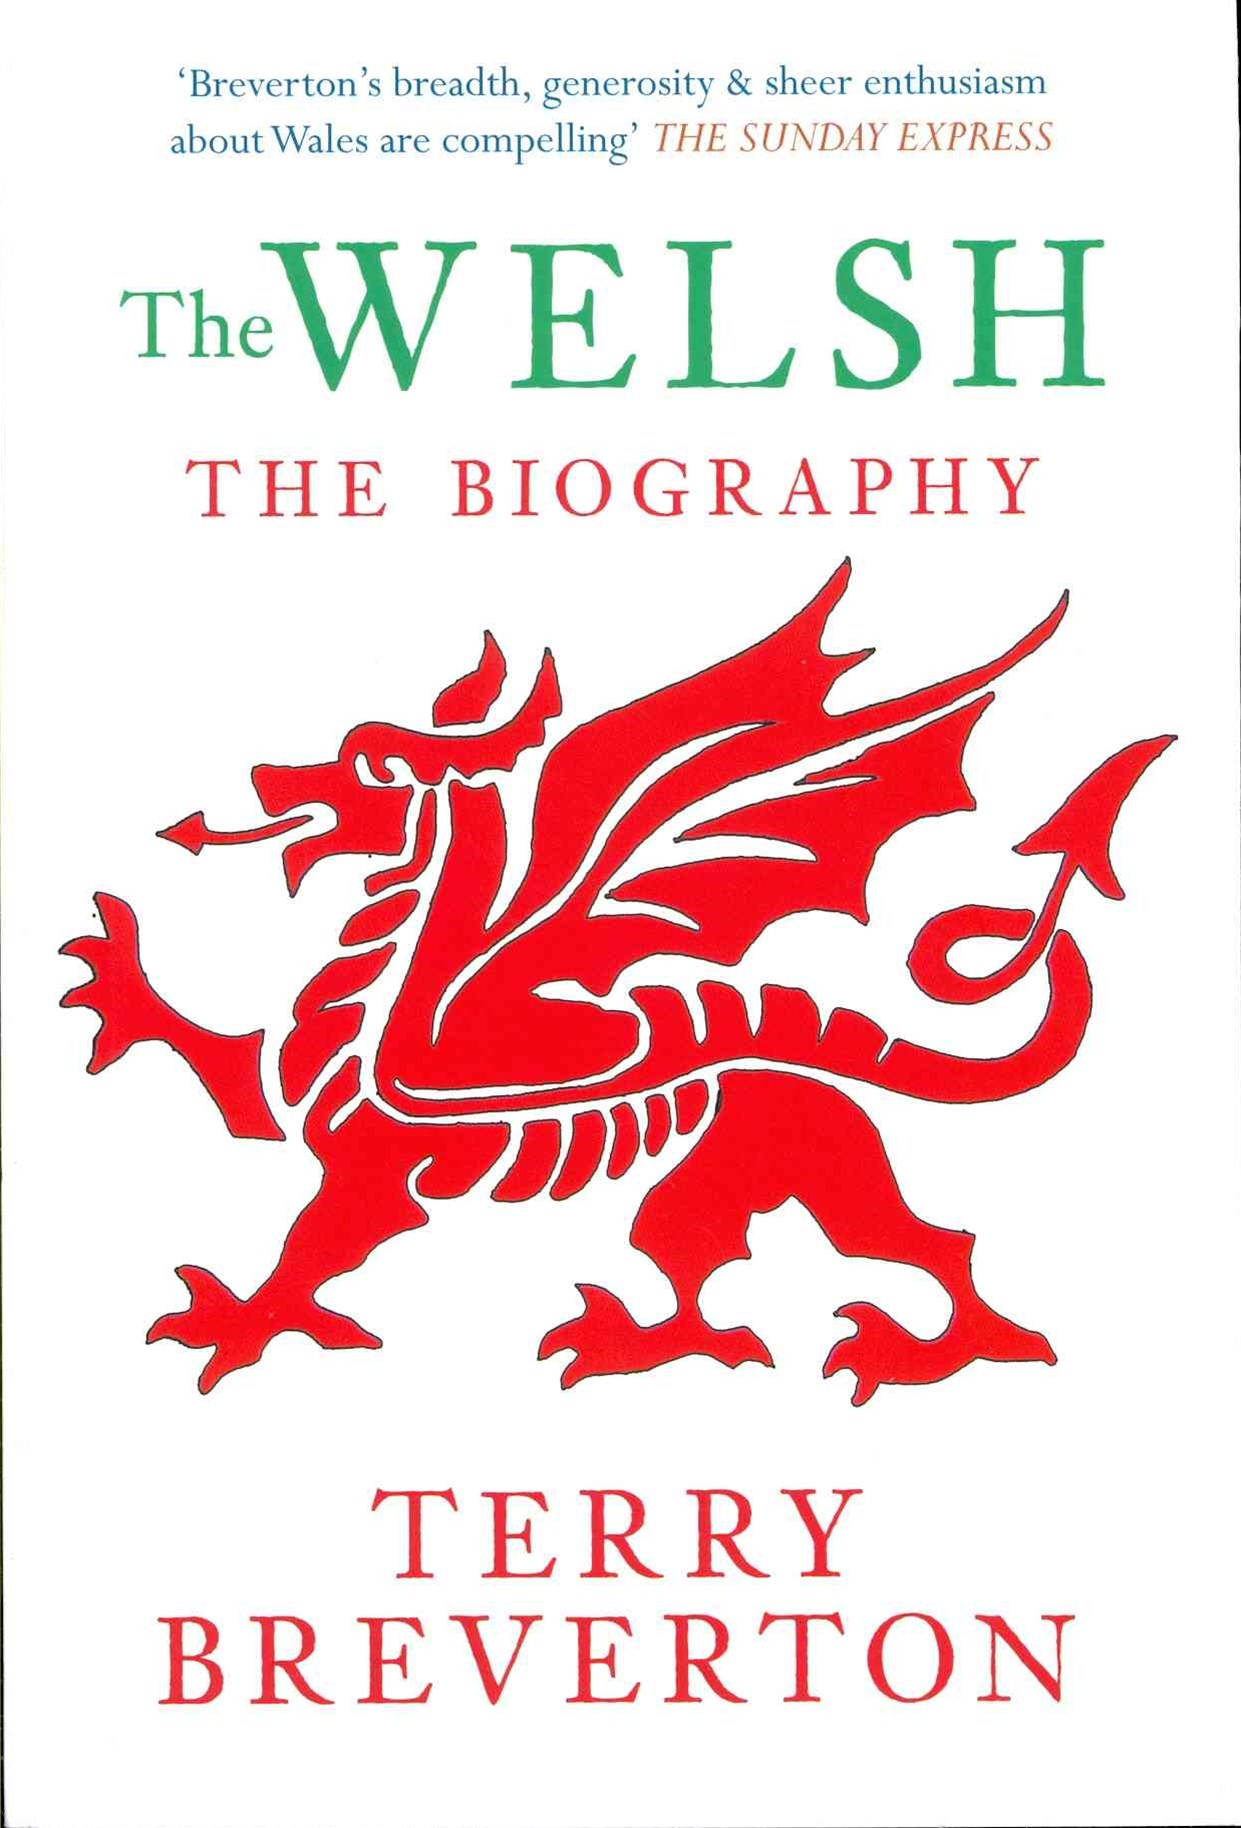 The Welsh